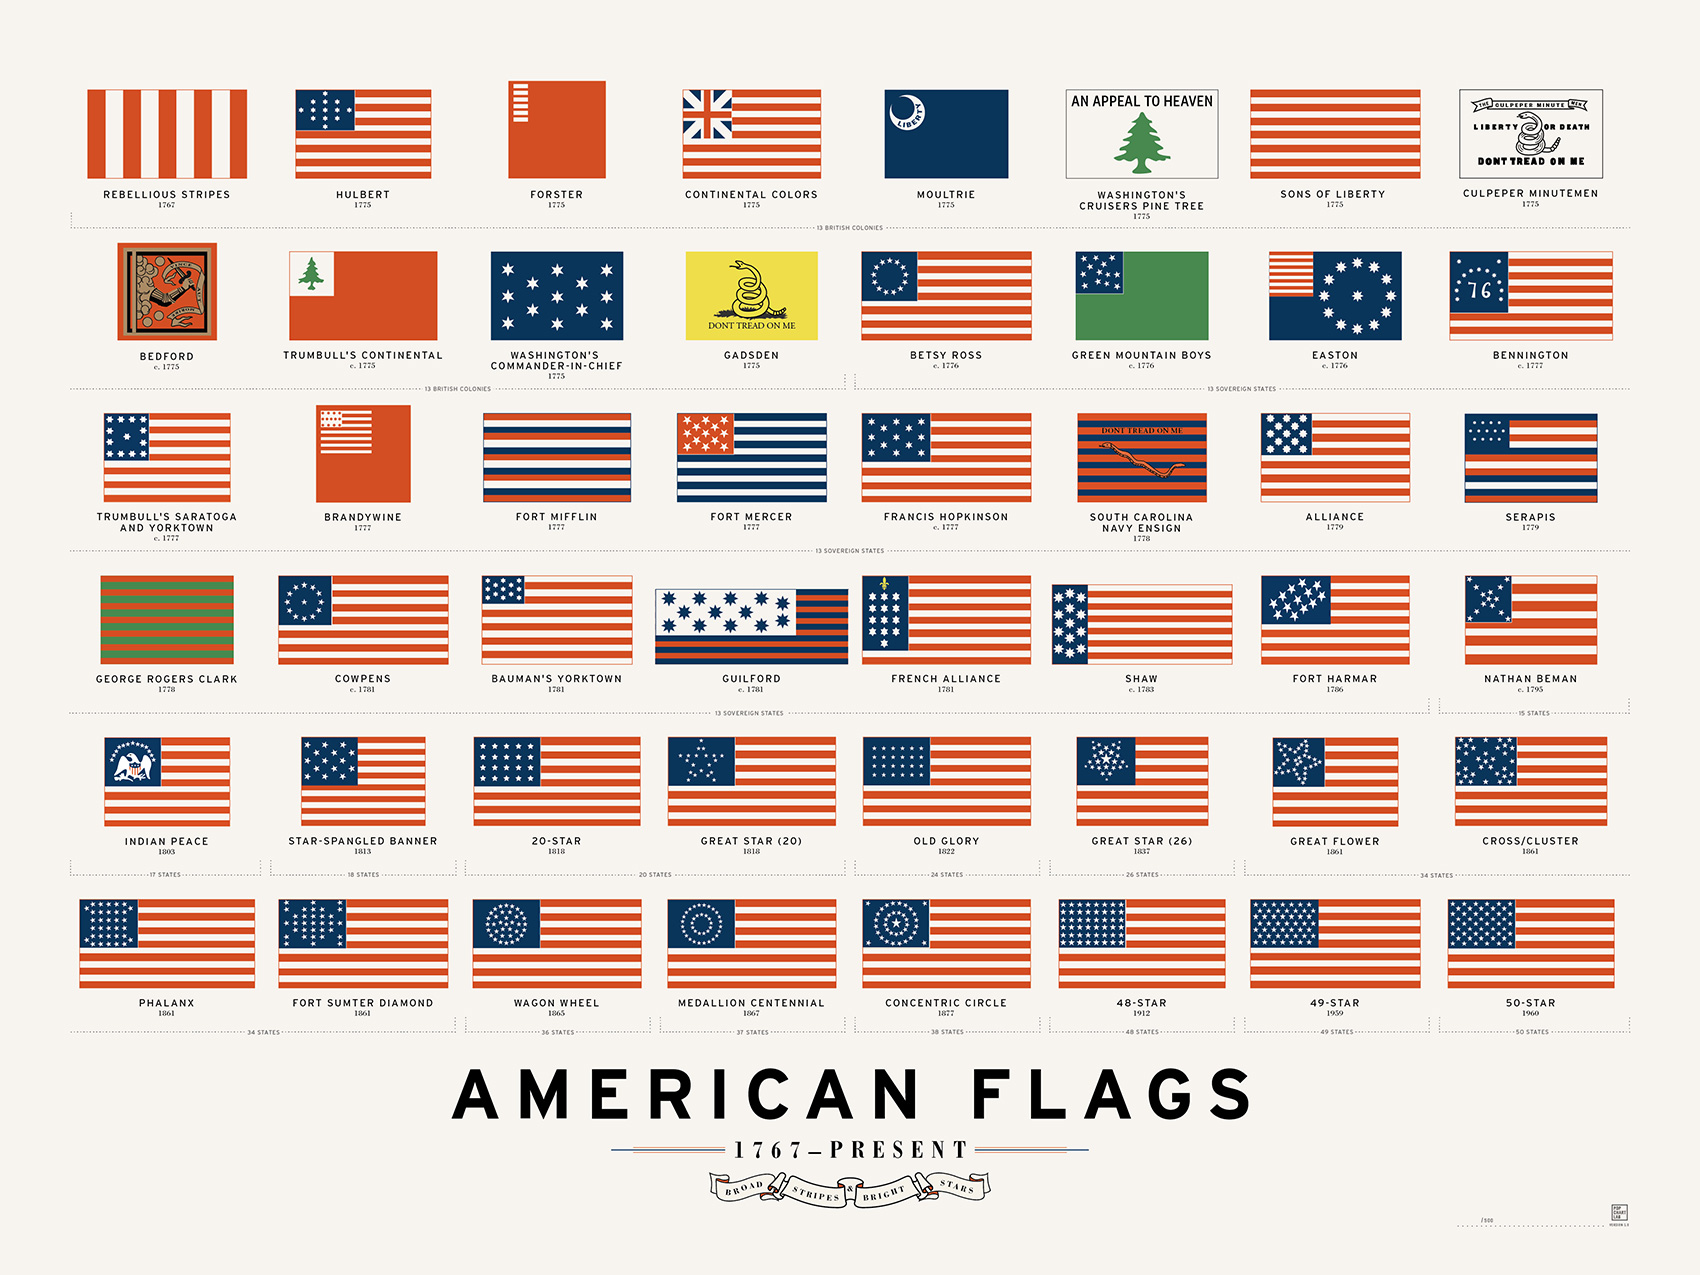 infographic american flags 1767 present michael